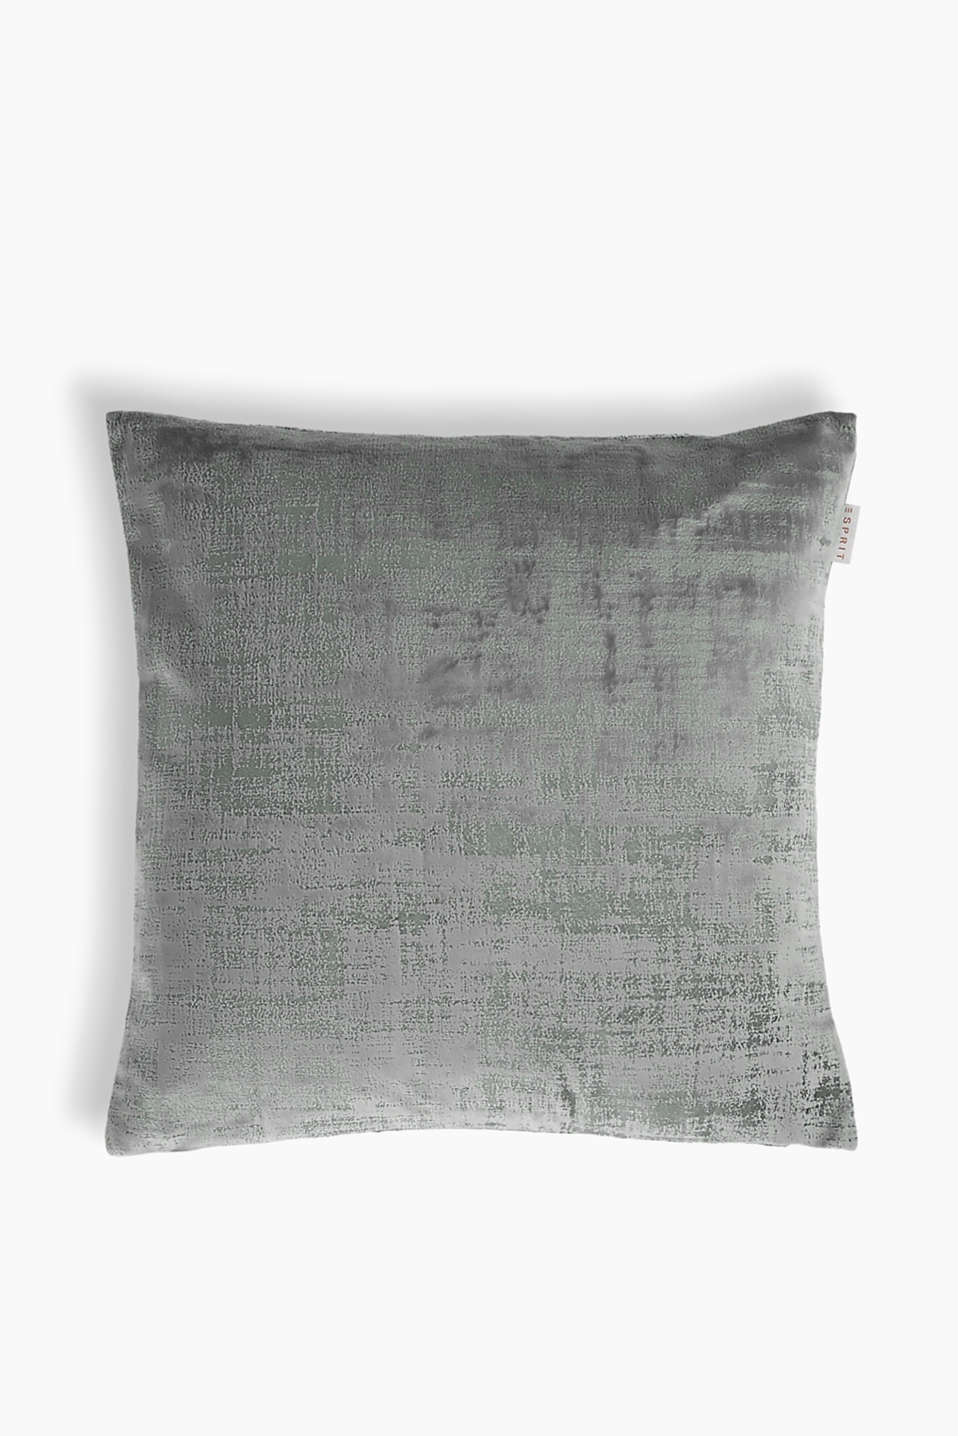 Esprit - Scratch cushion cover in velvet at our Online Shop 2bd9c6d377